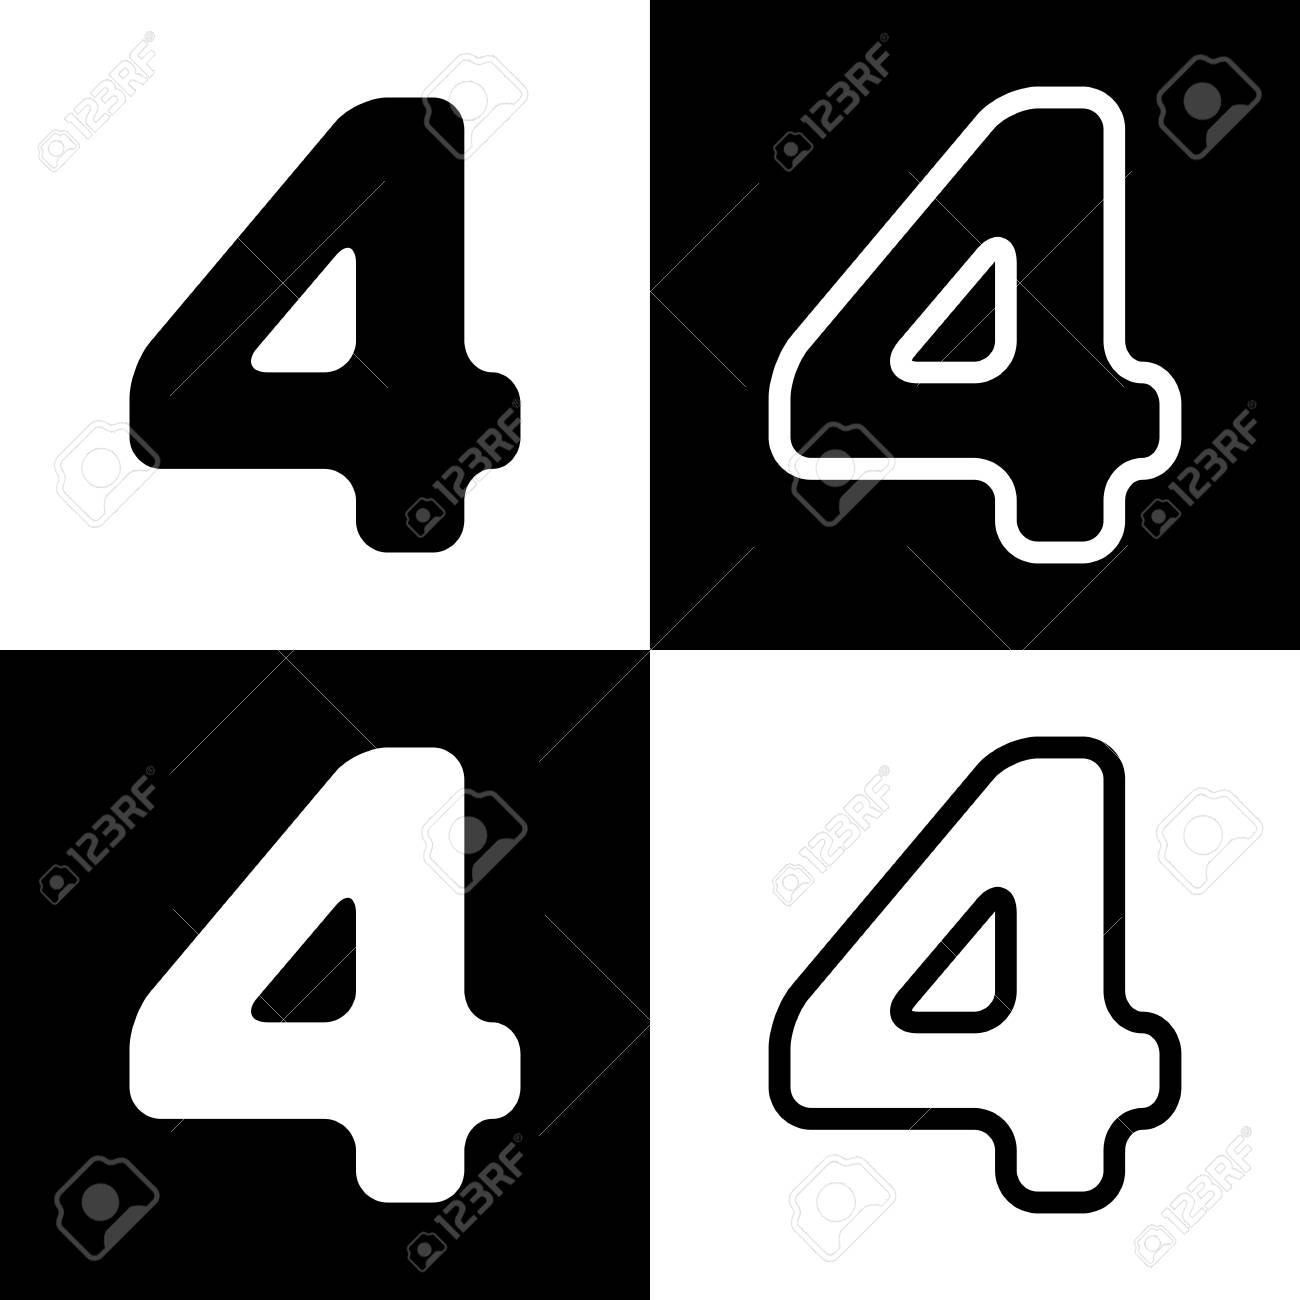 Number 4 Sign Design Template Element. Vector. Black And White ...